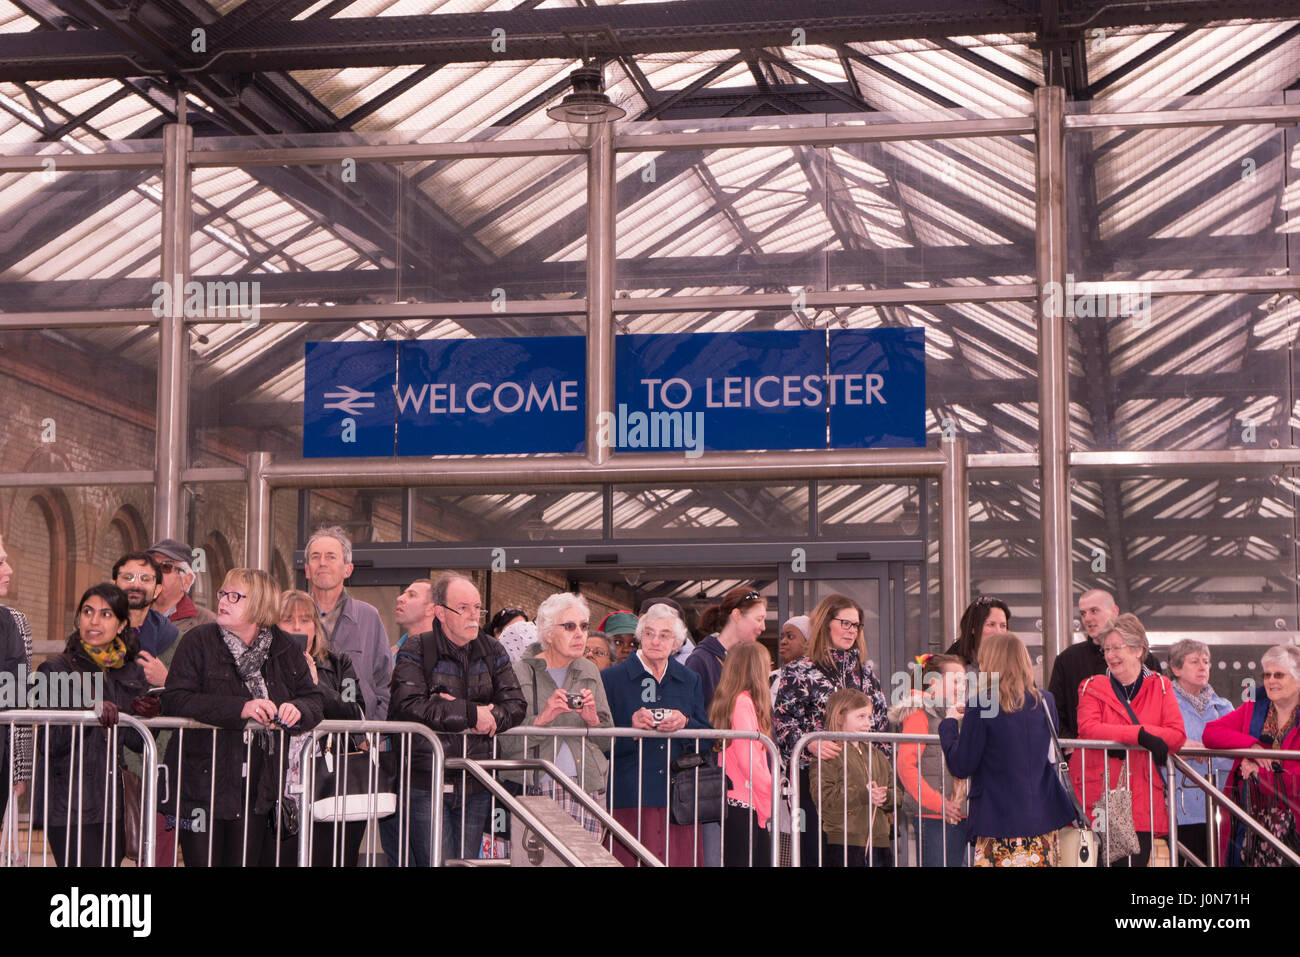 Leicester, UK. Thursday 13th April 2017.crowds wait to welcome Her Majesty Queen Elizabeth II and The Duke or Edinburgh - Stock Image